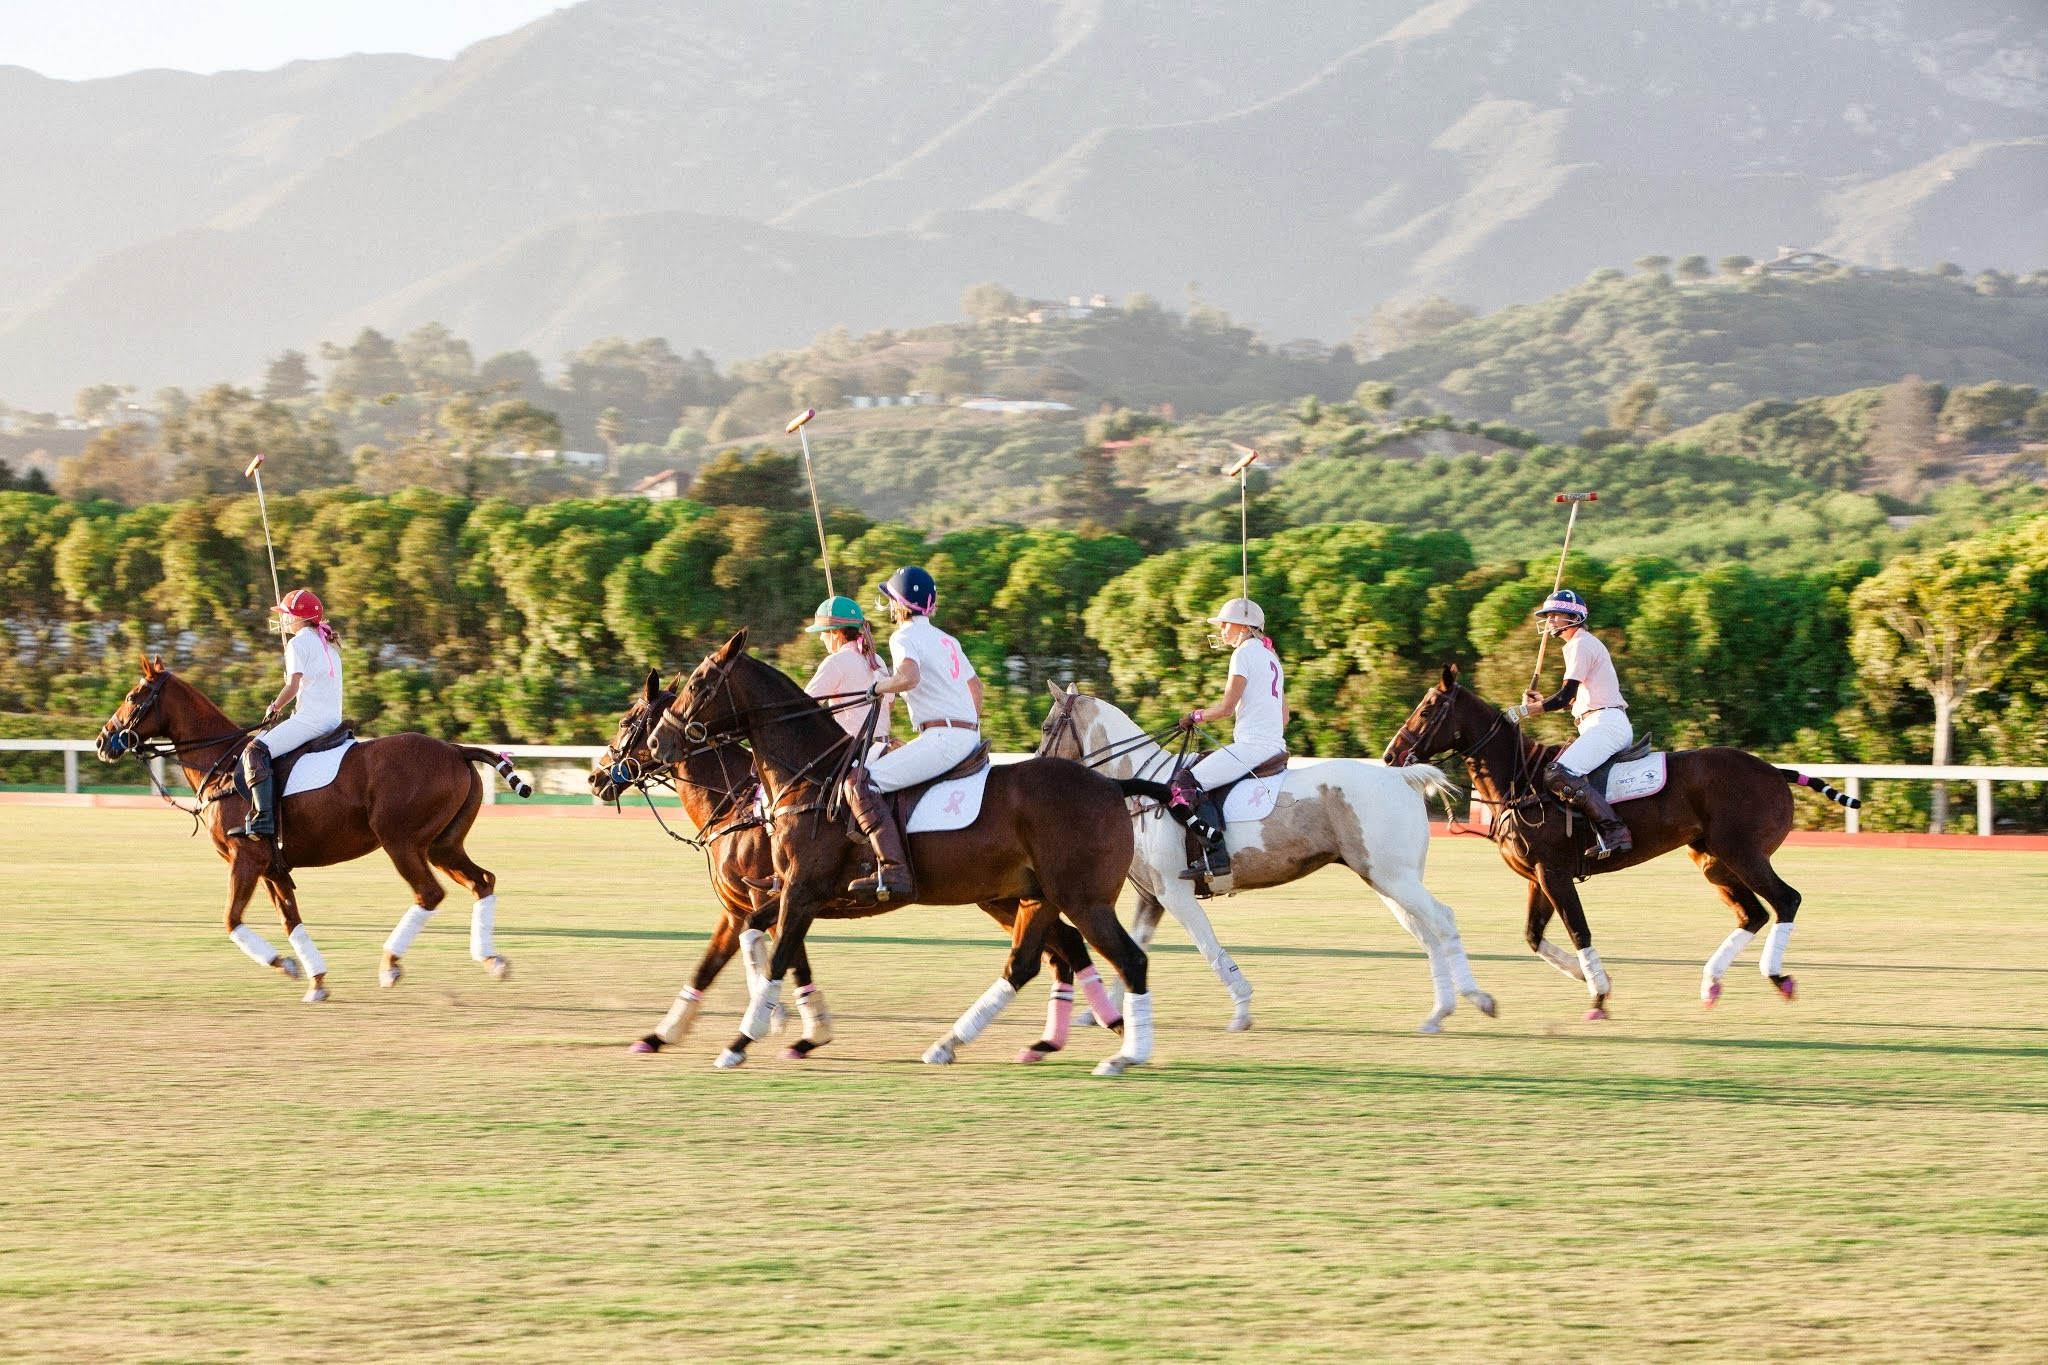 www.FeliciEvents | Pink Polo Party | Funraising Event | Felici Fundraiser | Polo Theme | Clarissa Koenig Photography | Polo Match